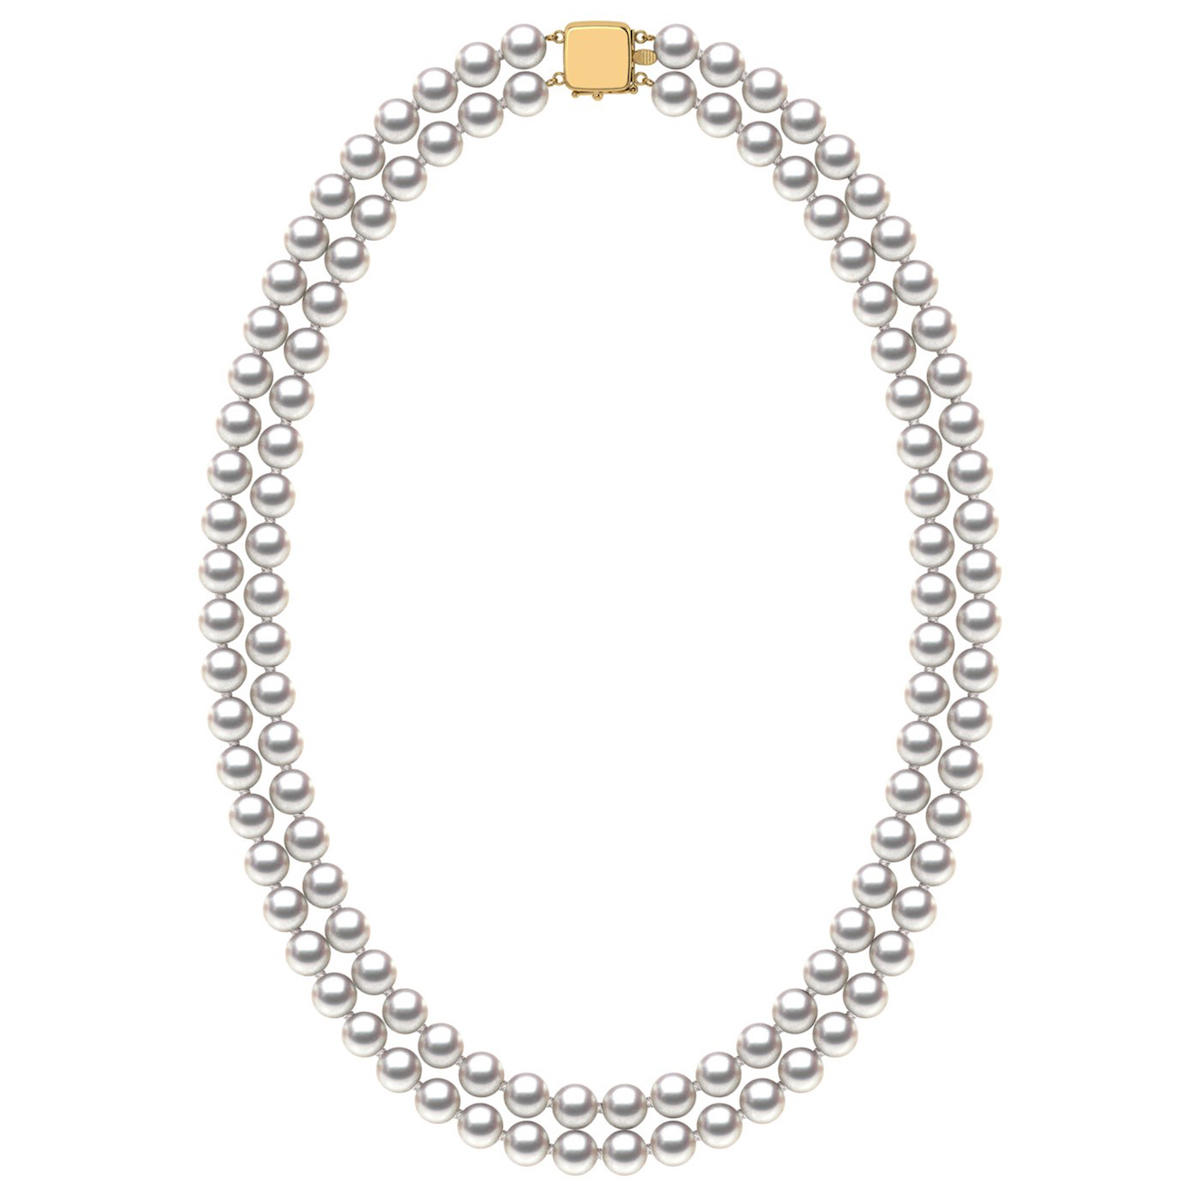 7.0-7.5 mm Double-Strand White Akoya Pearl Necklace